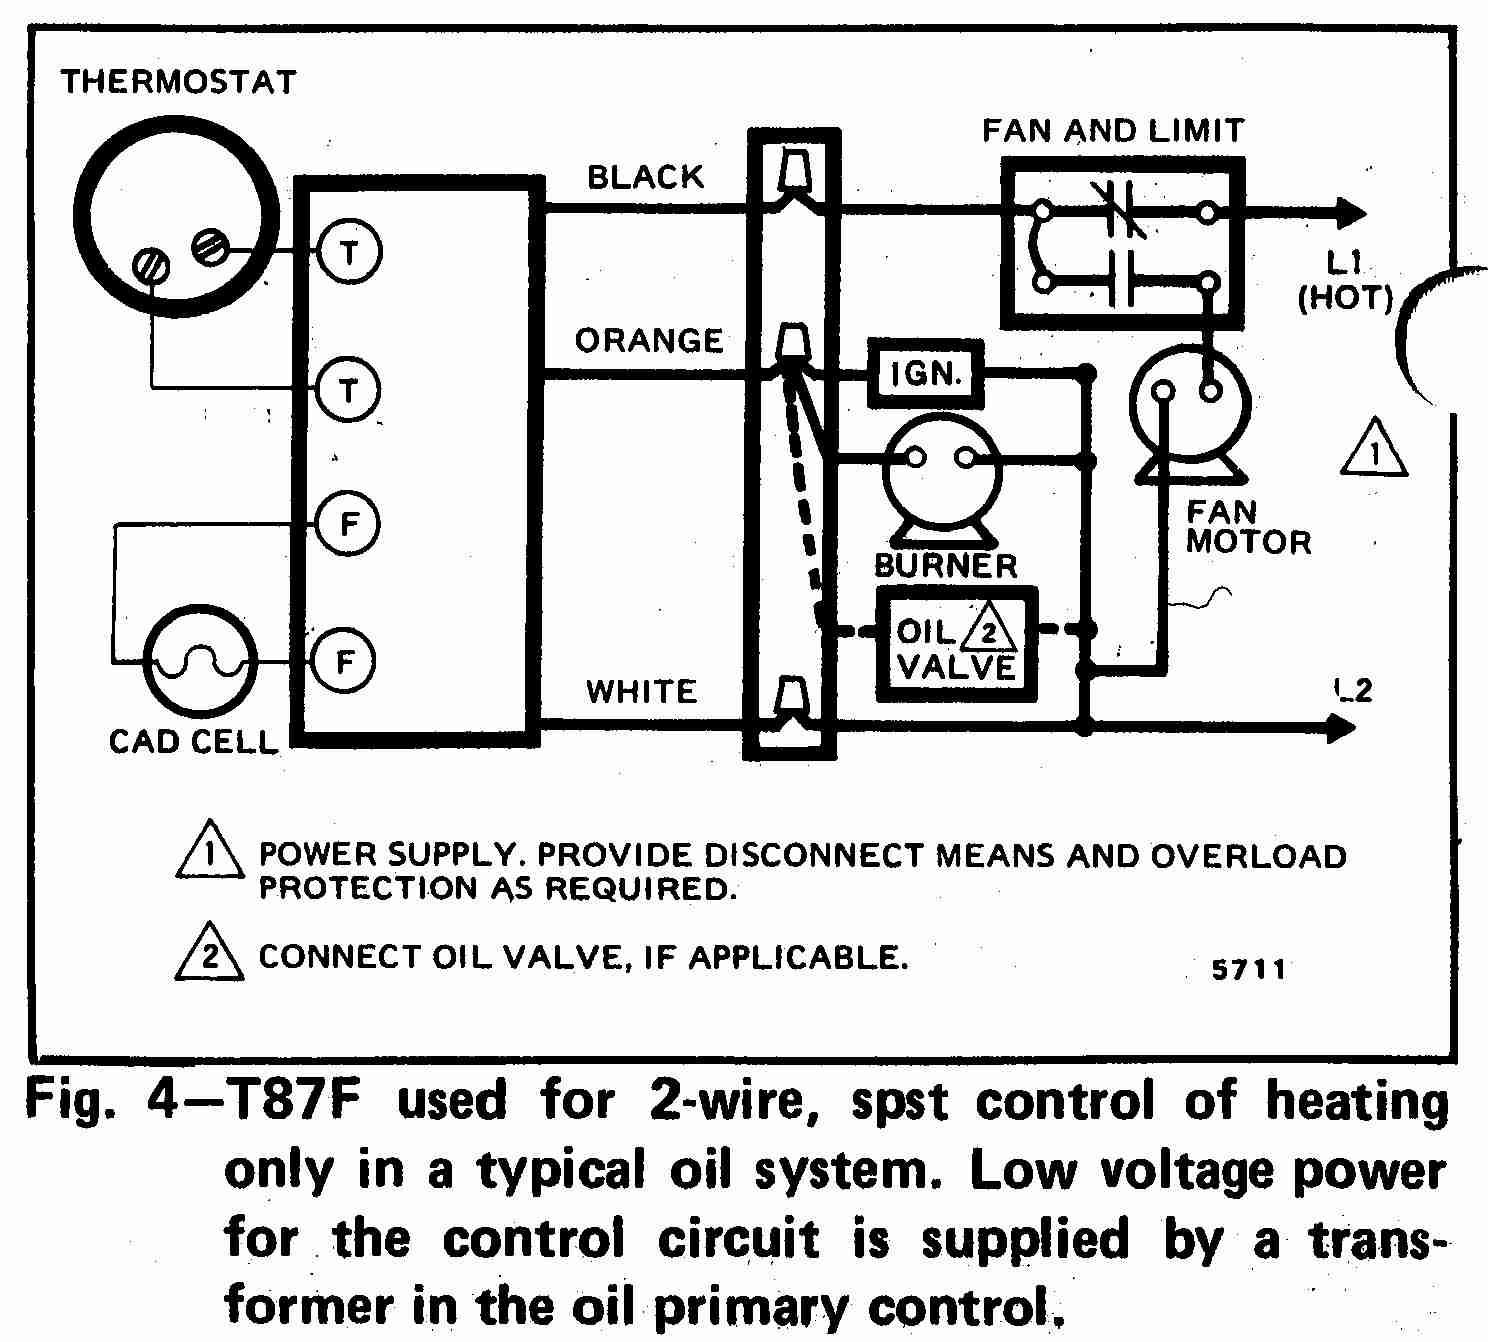 hight resolution of room thermostat wiring diagrams for hvac systems wiring diagram white rodgers free download diagrams